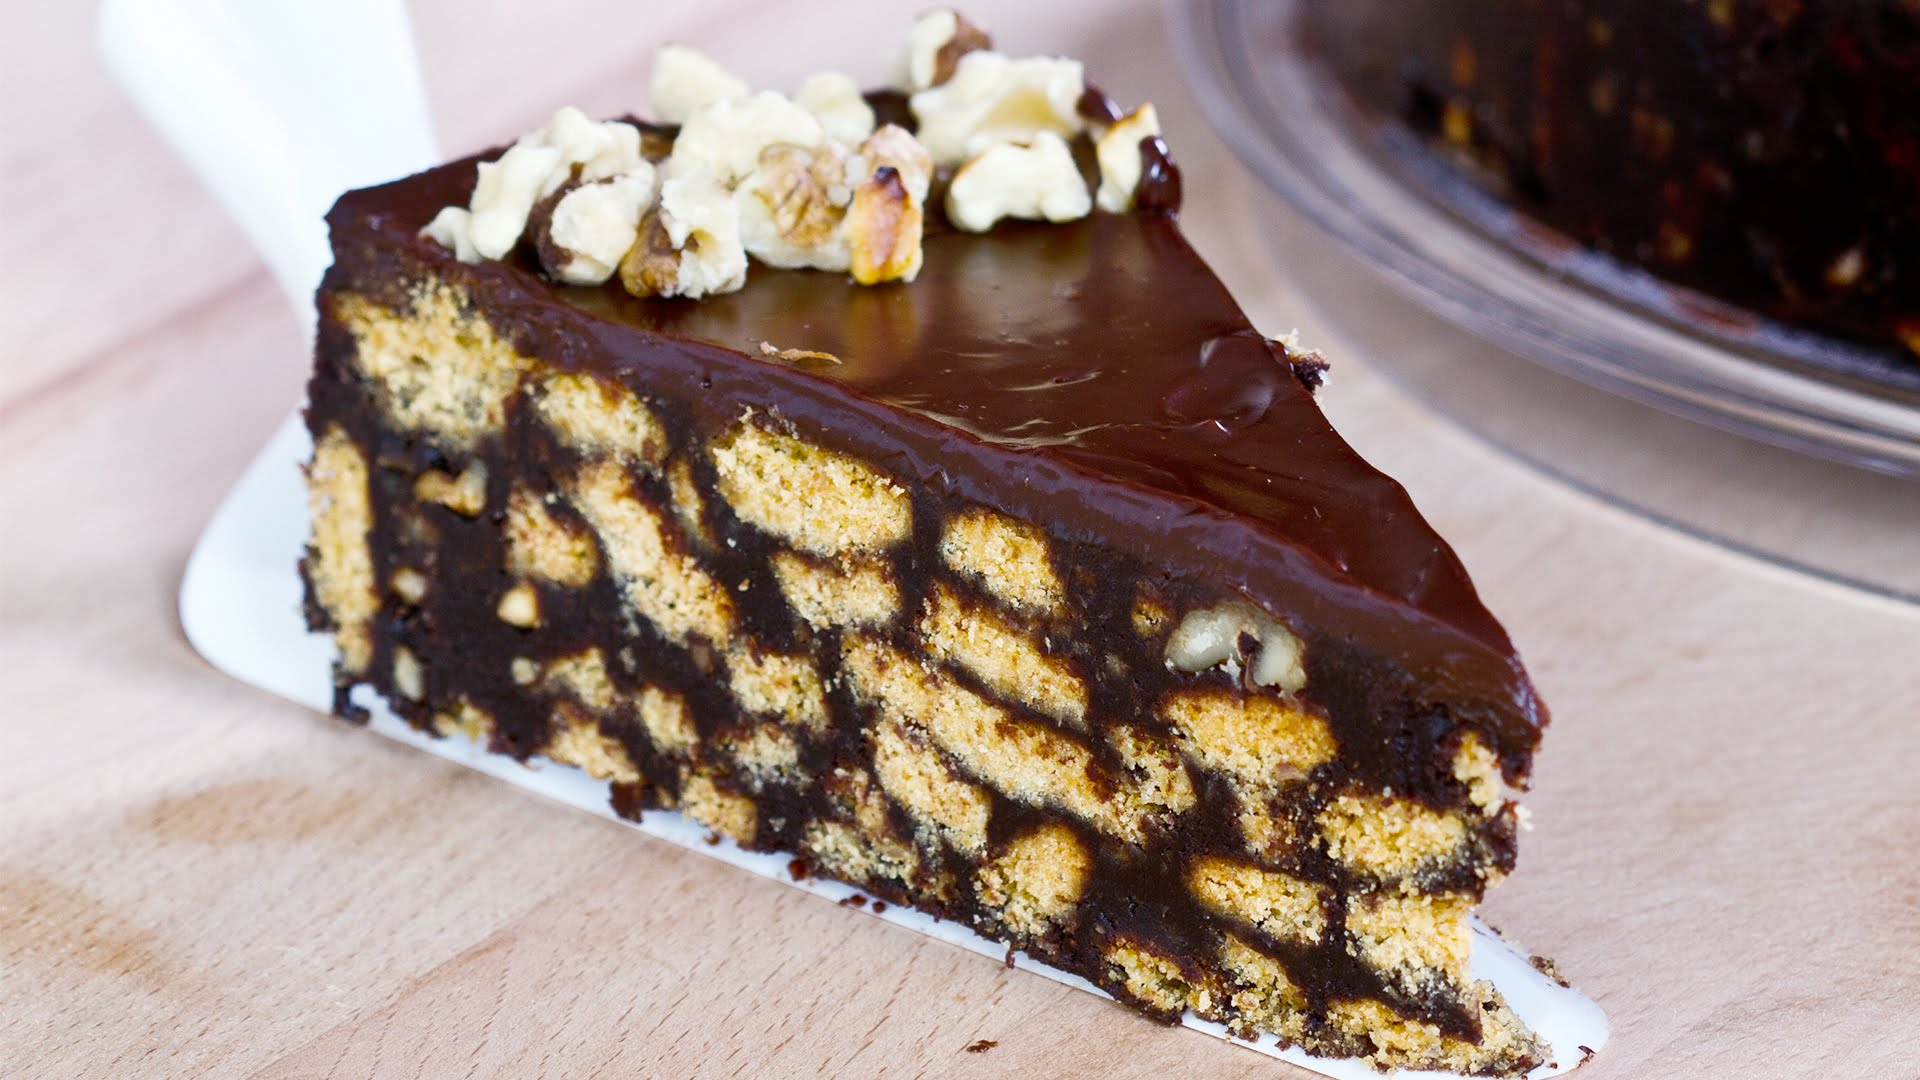 This Chocolate Biscuit Cake Recipe Put A Smile On My Face – See Why Here